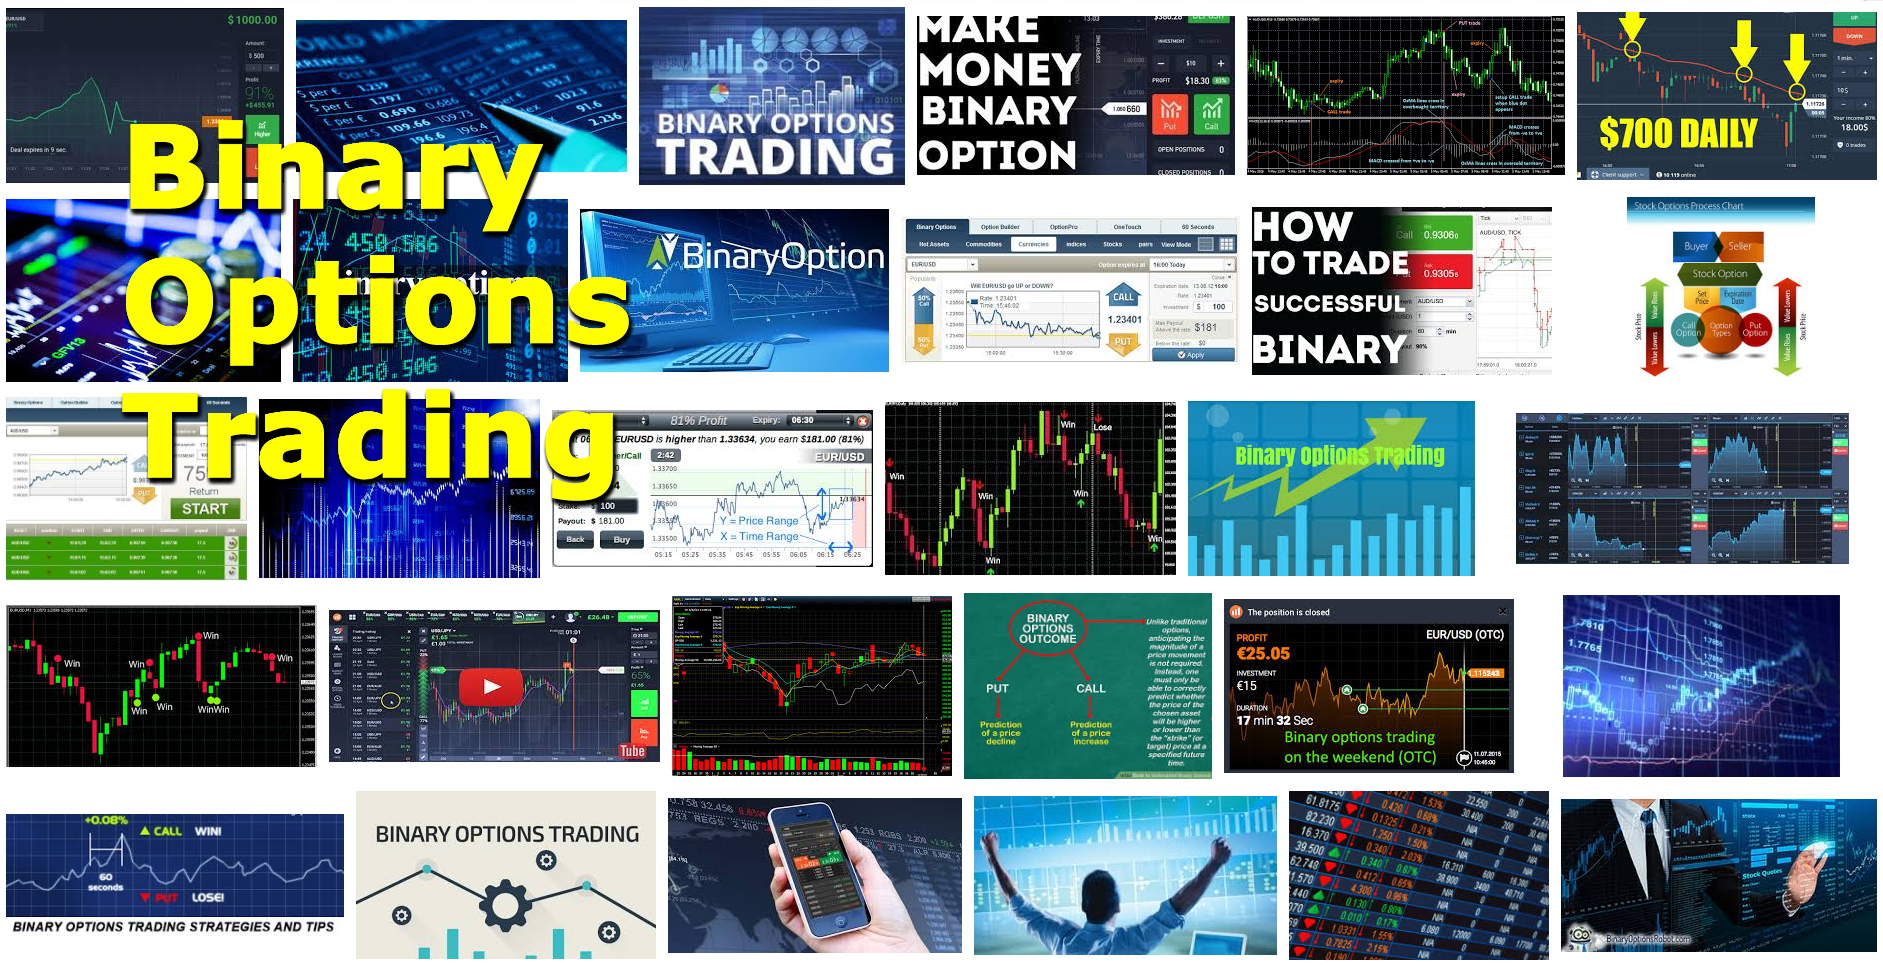 Binary options trading loss